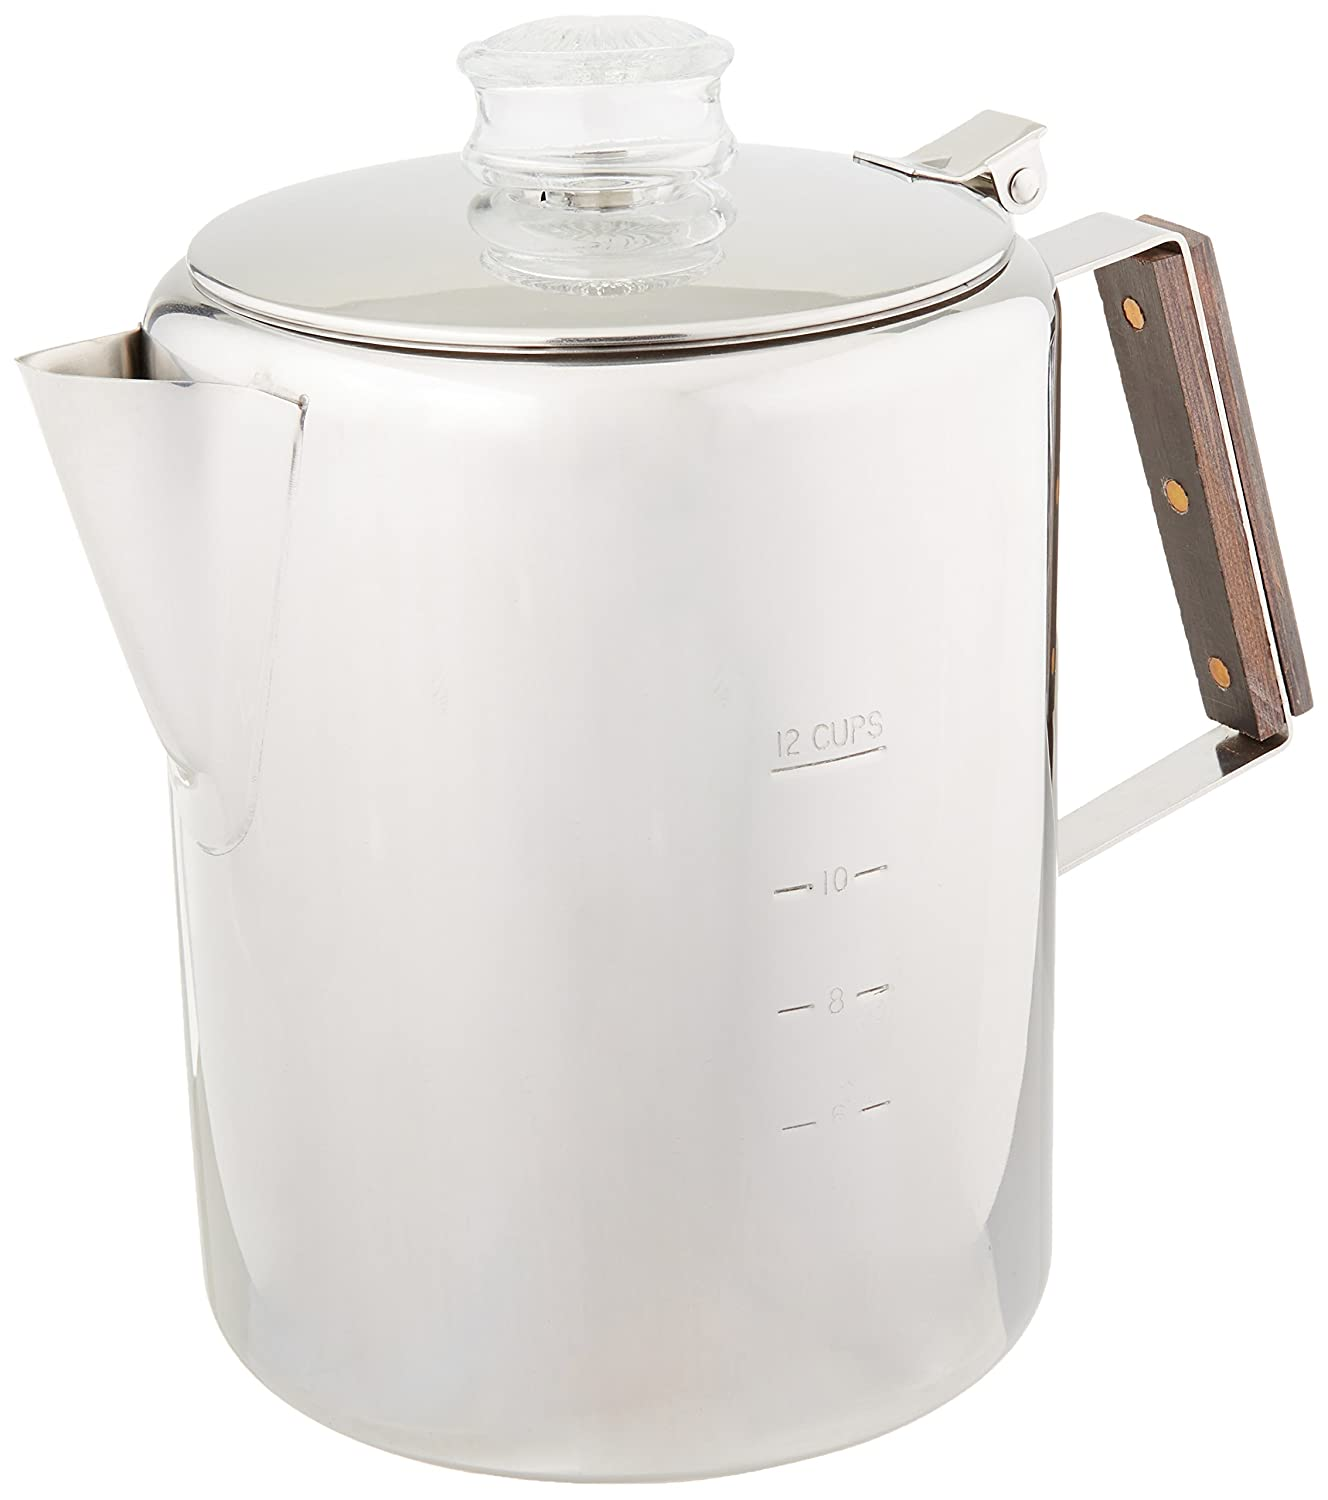 Tops Rapid Brew Stainless Steel Percolator, 2-12 Cup WalterDrake 409